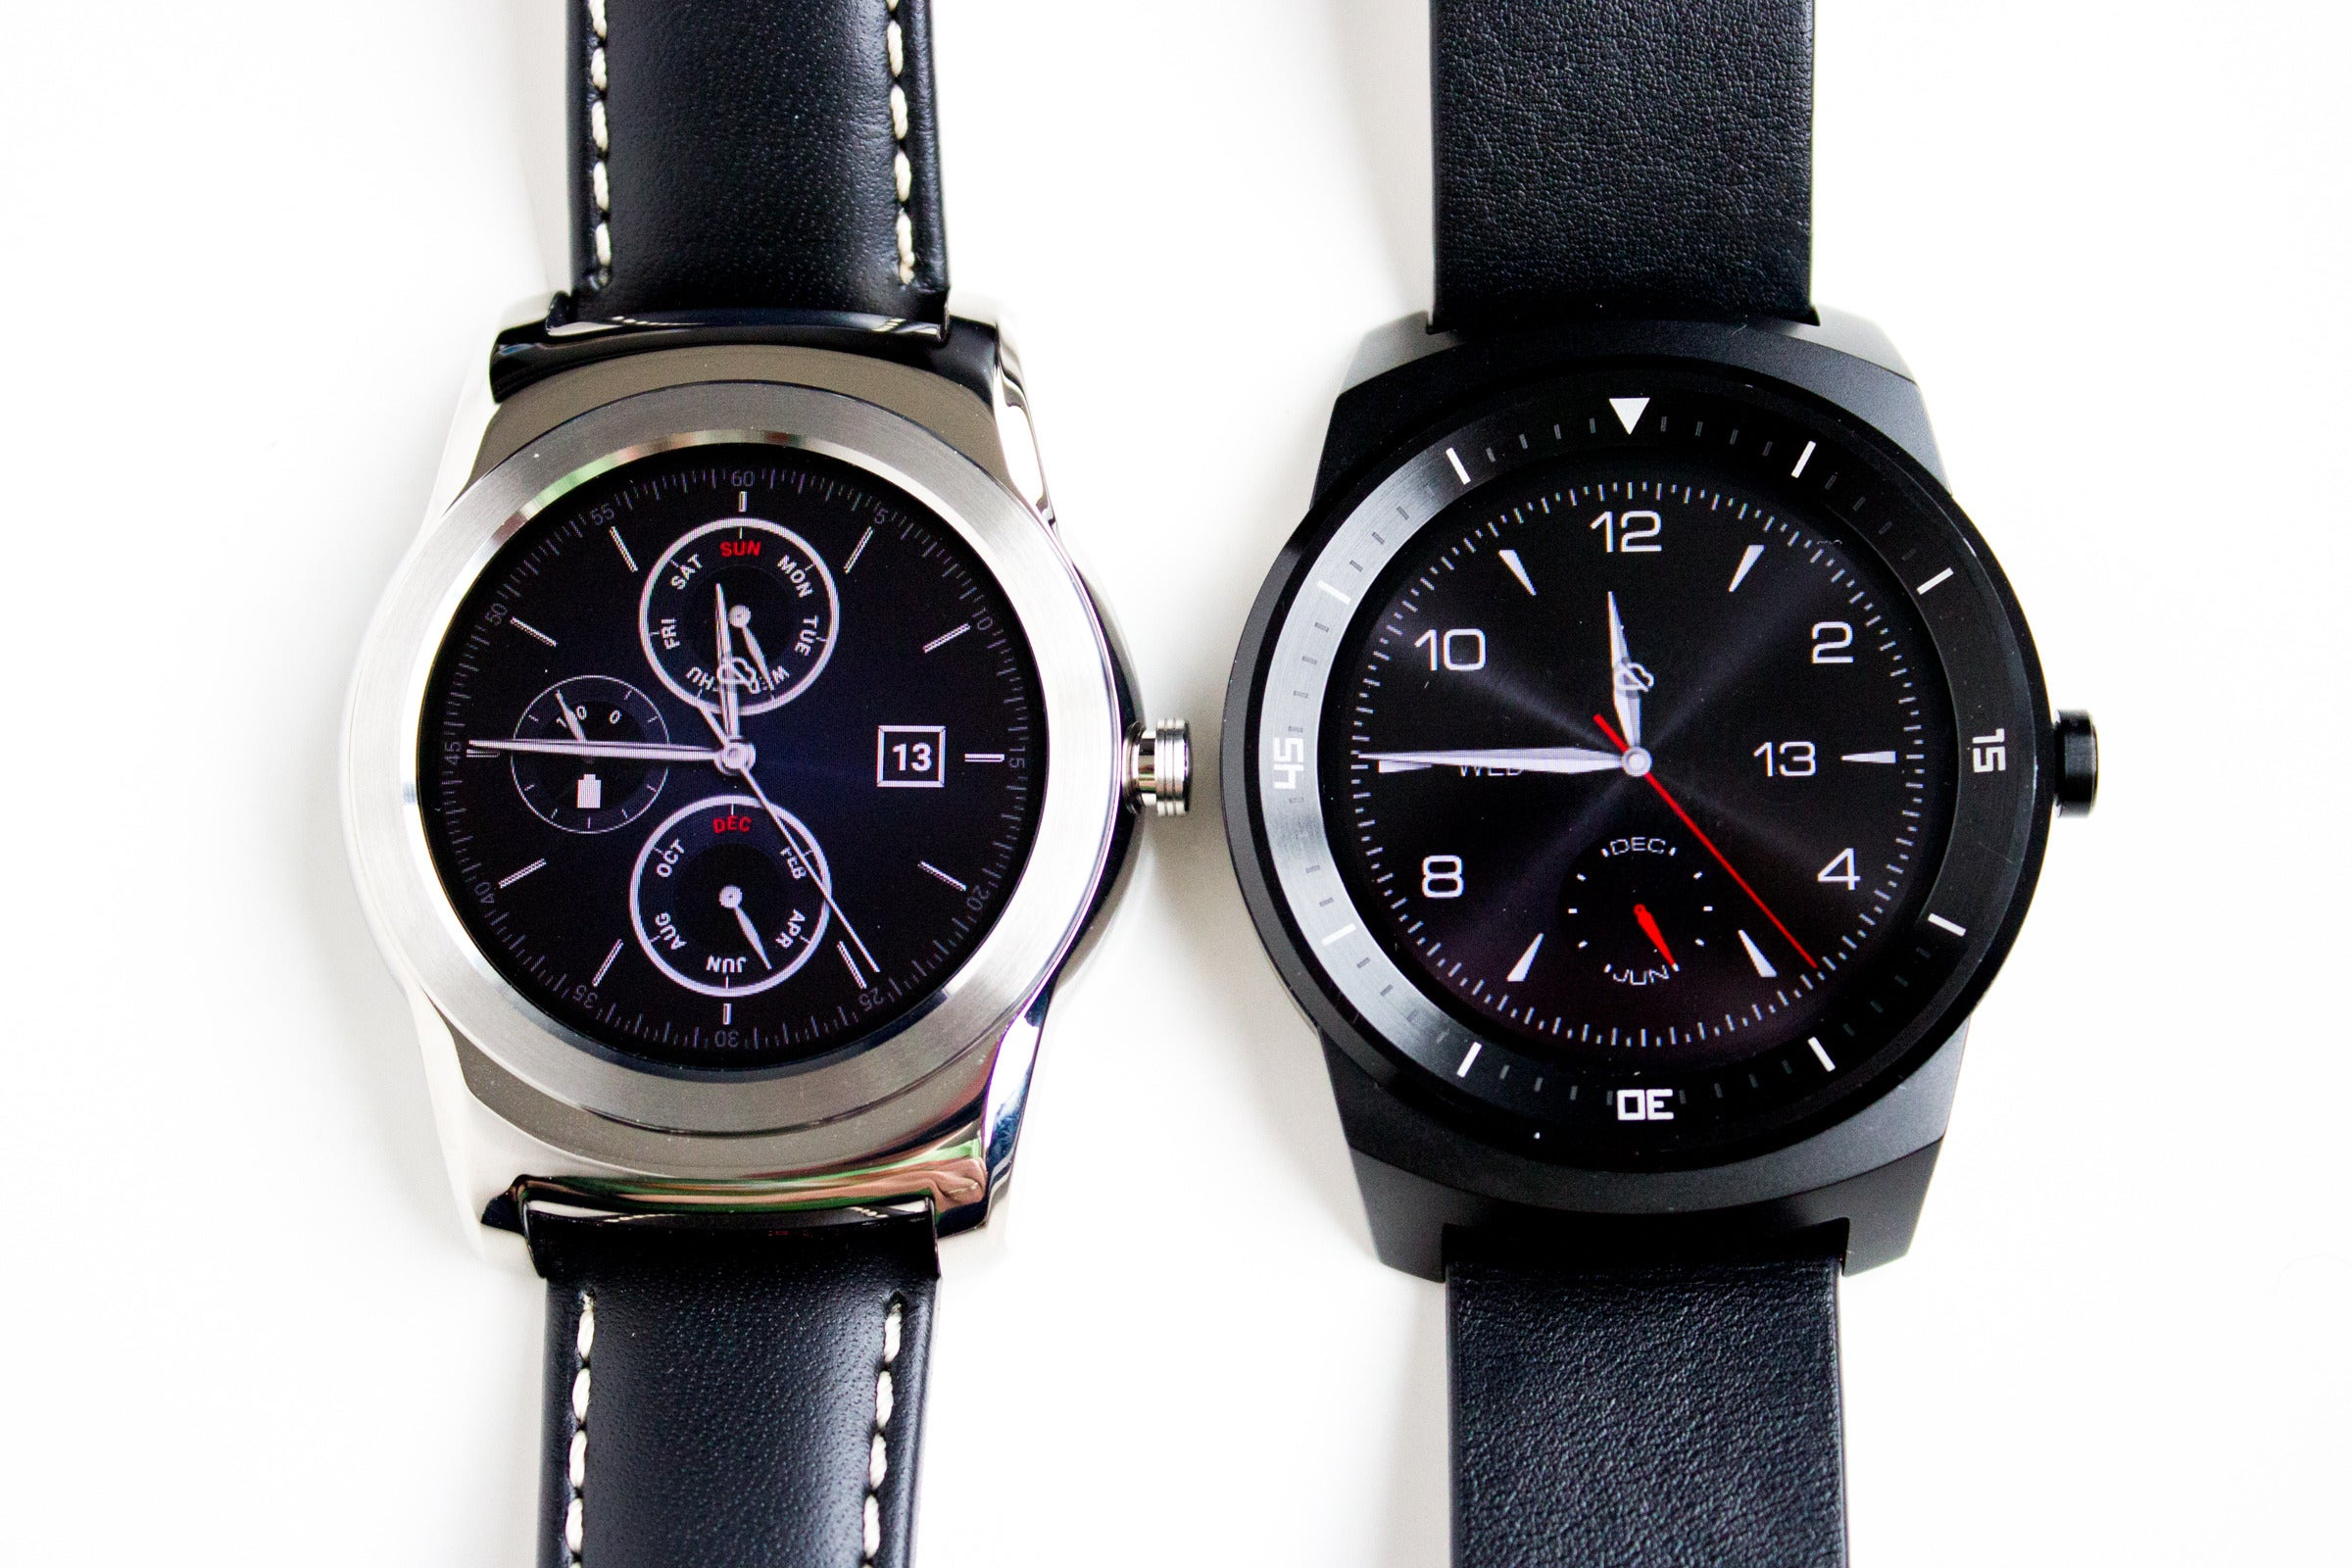 LG Watch Urbane review: Big, bulky, and boring